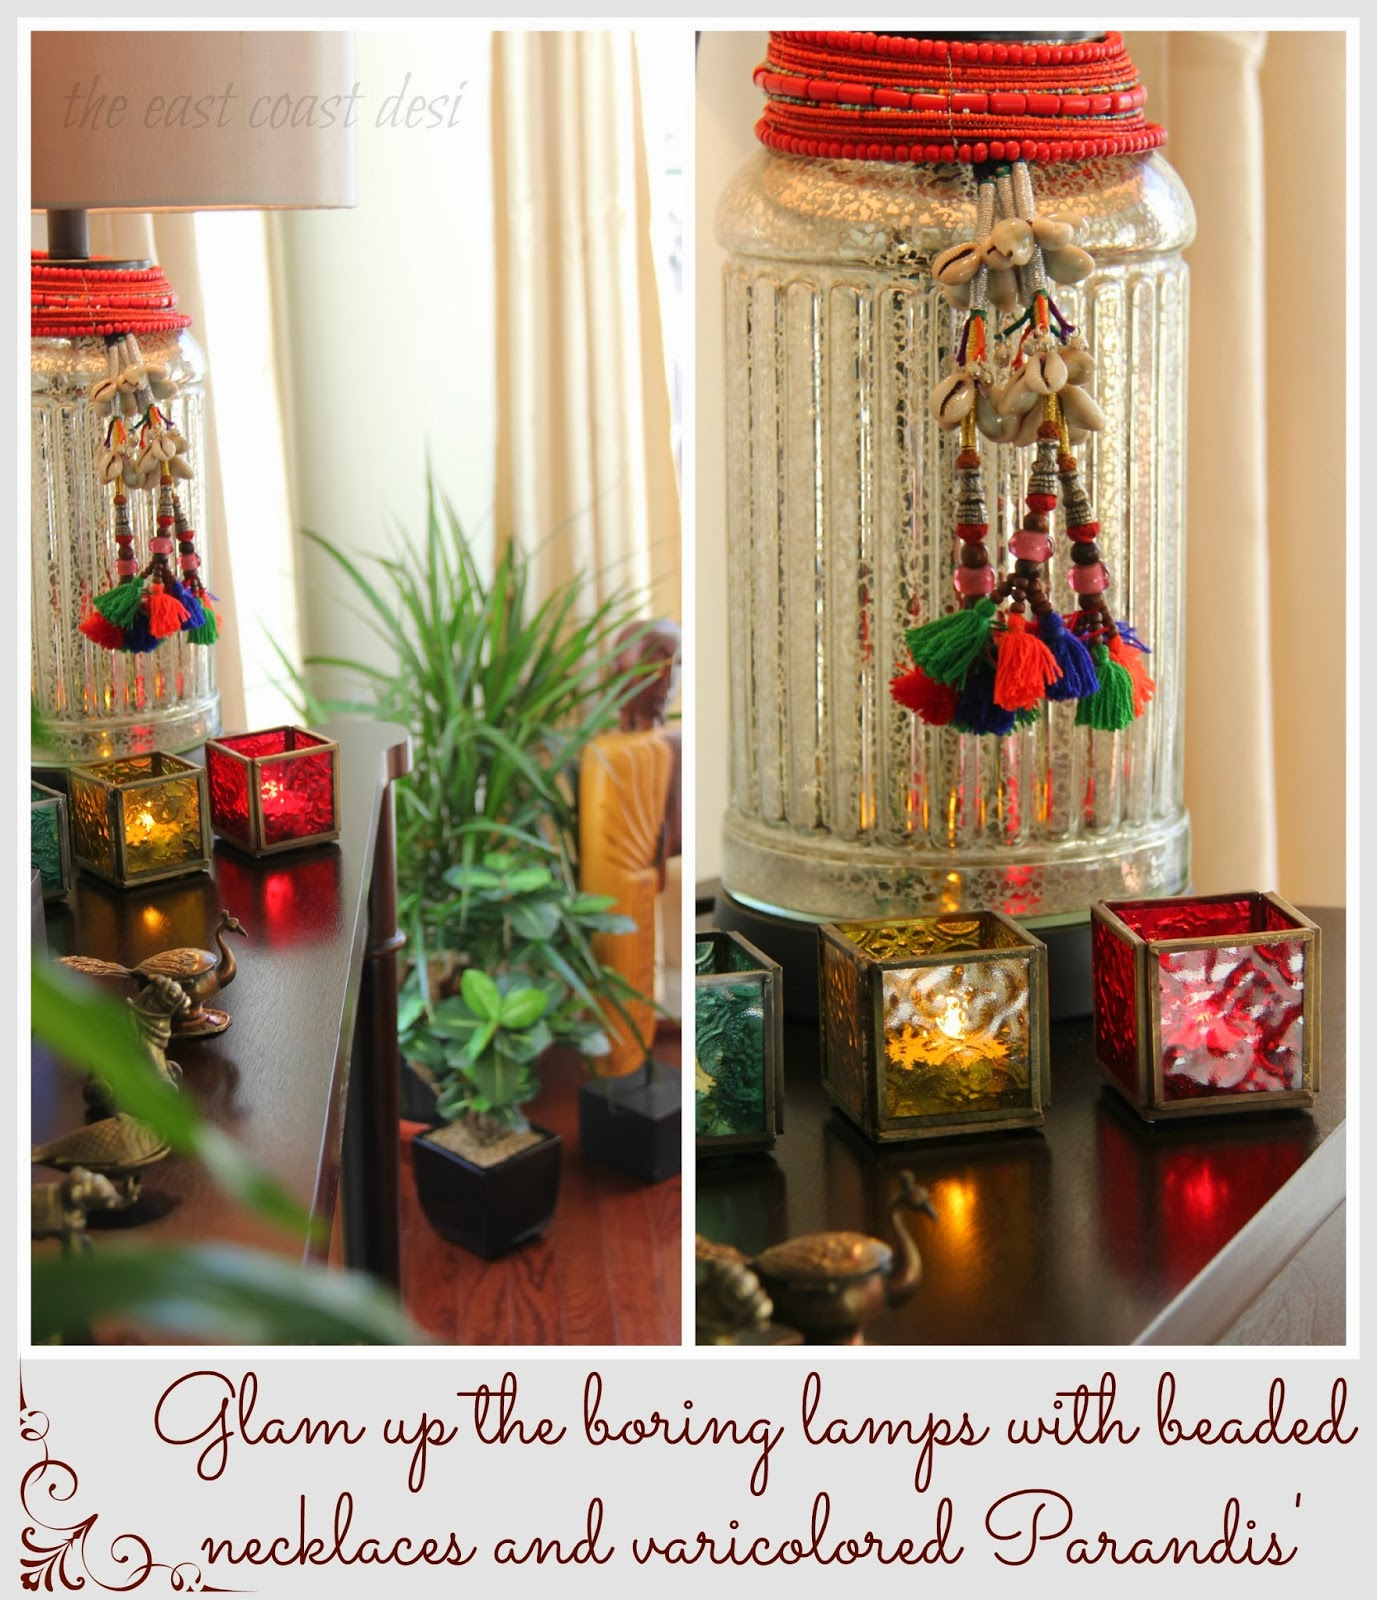 The east coast desi my living room a reflection of india diwali inspiration day 3 - Online home decorating ideas ...